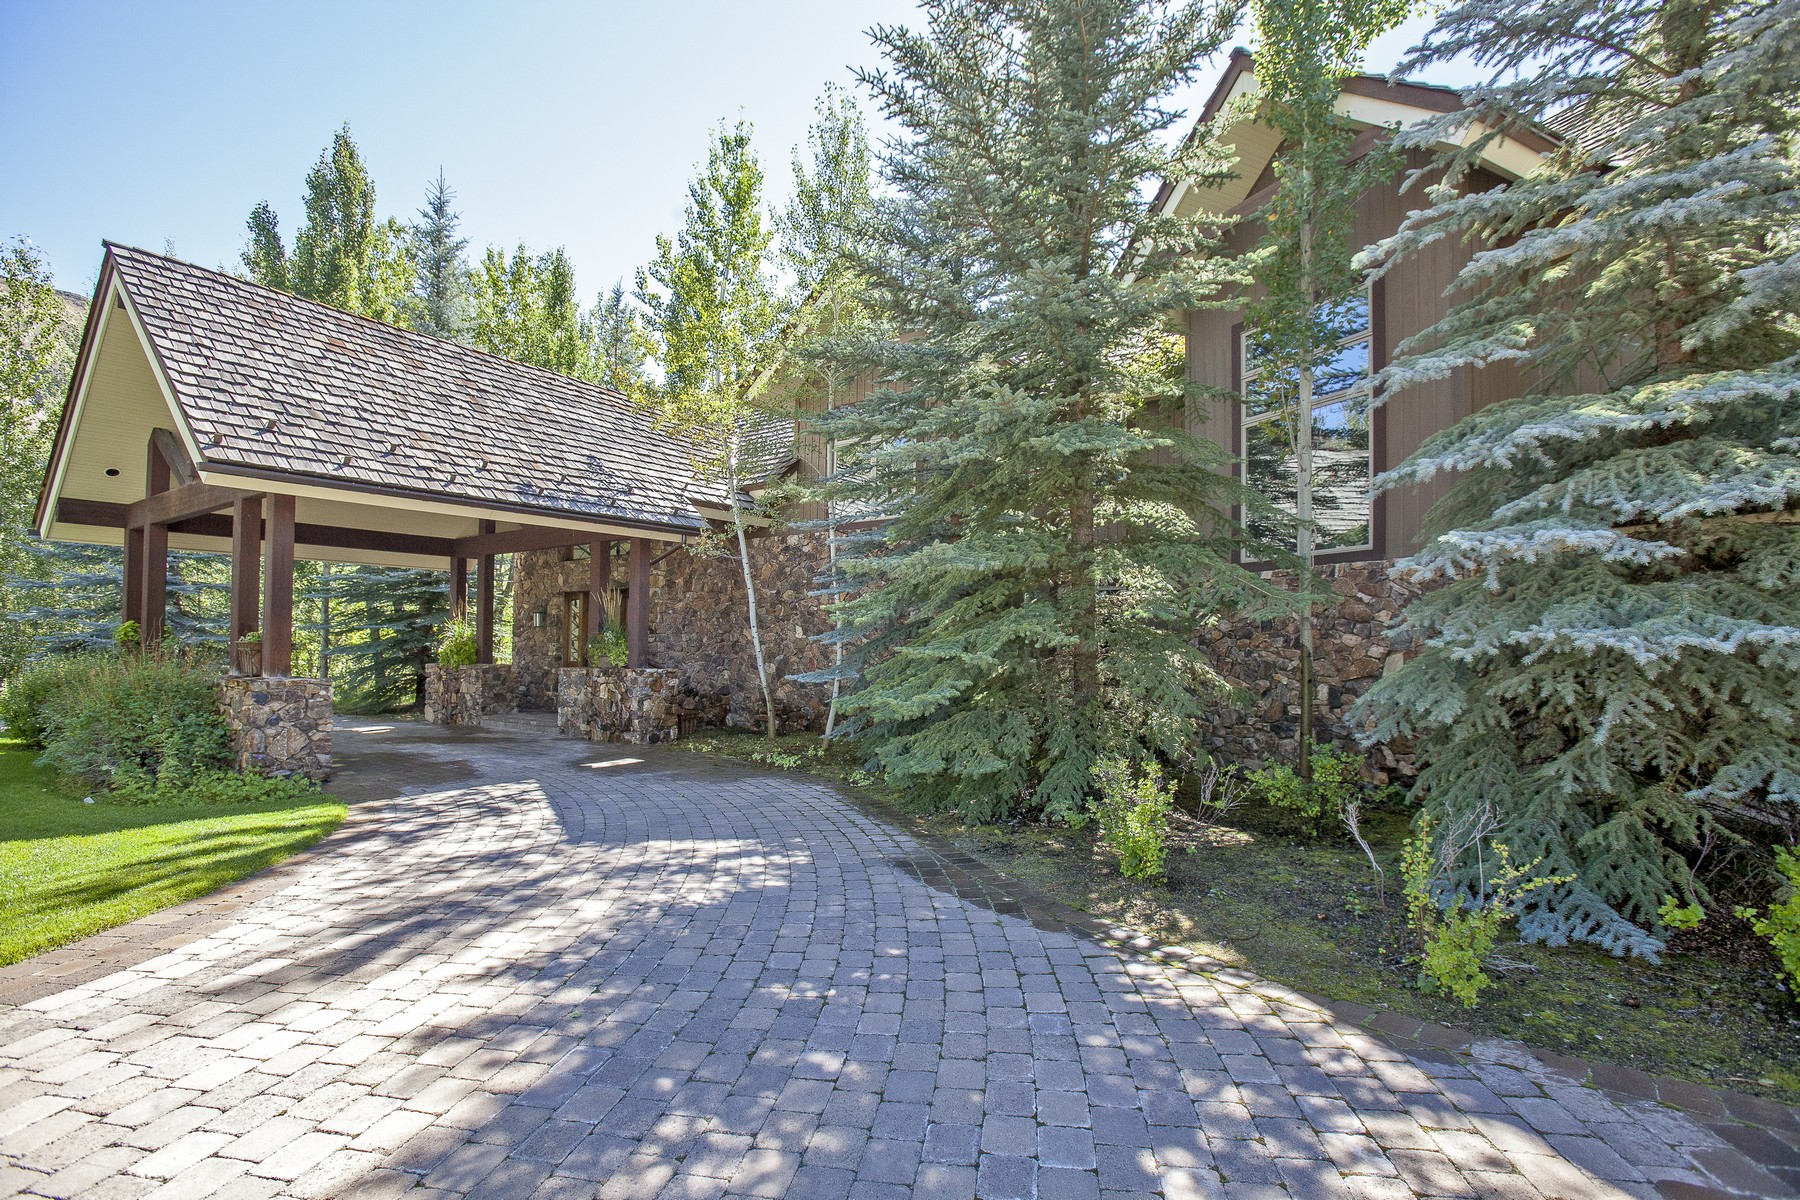 Casa Unifamiliar por un Venta en Spectacular Home Near the Big Wood River 33 Cliffside Dr Ketchum, Idaho 83340 Estados Unidos